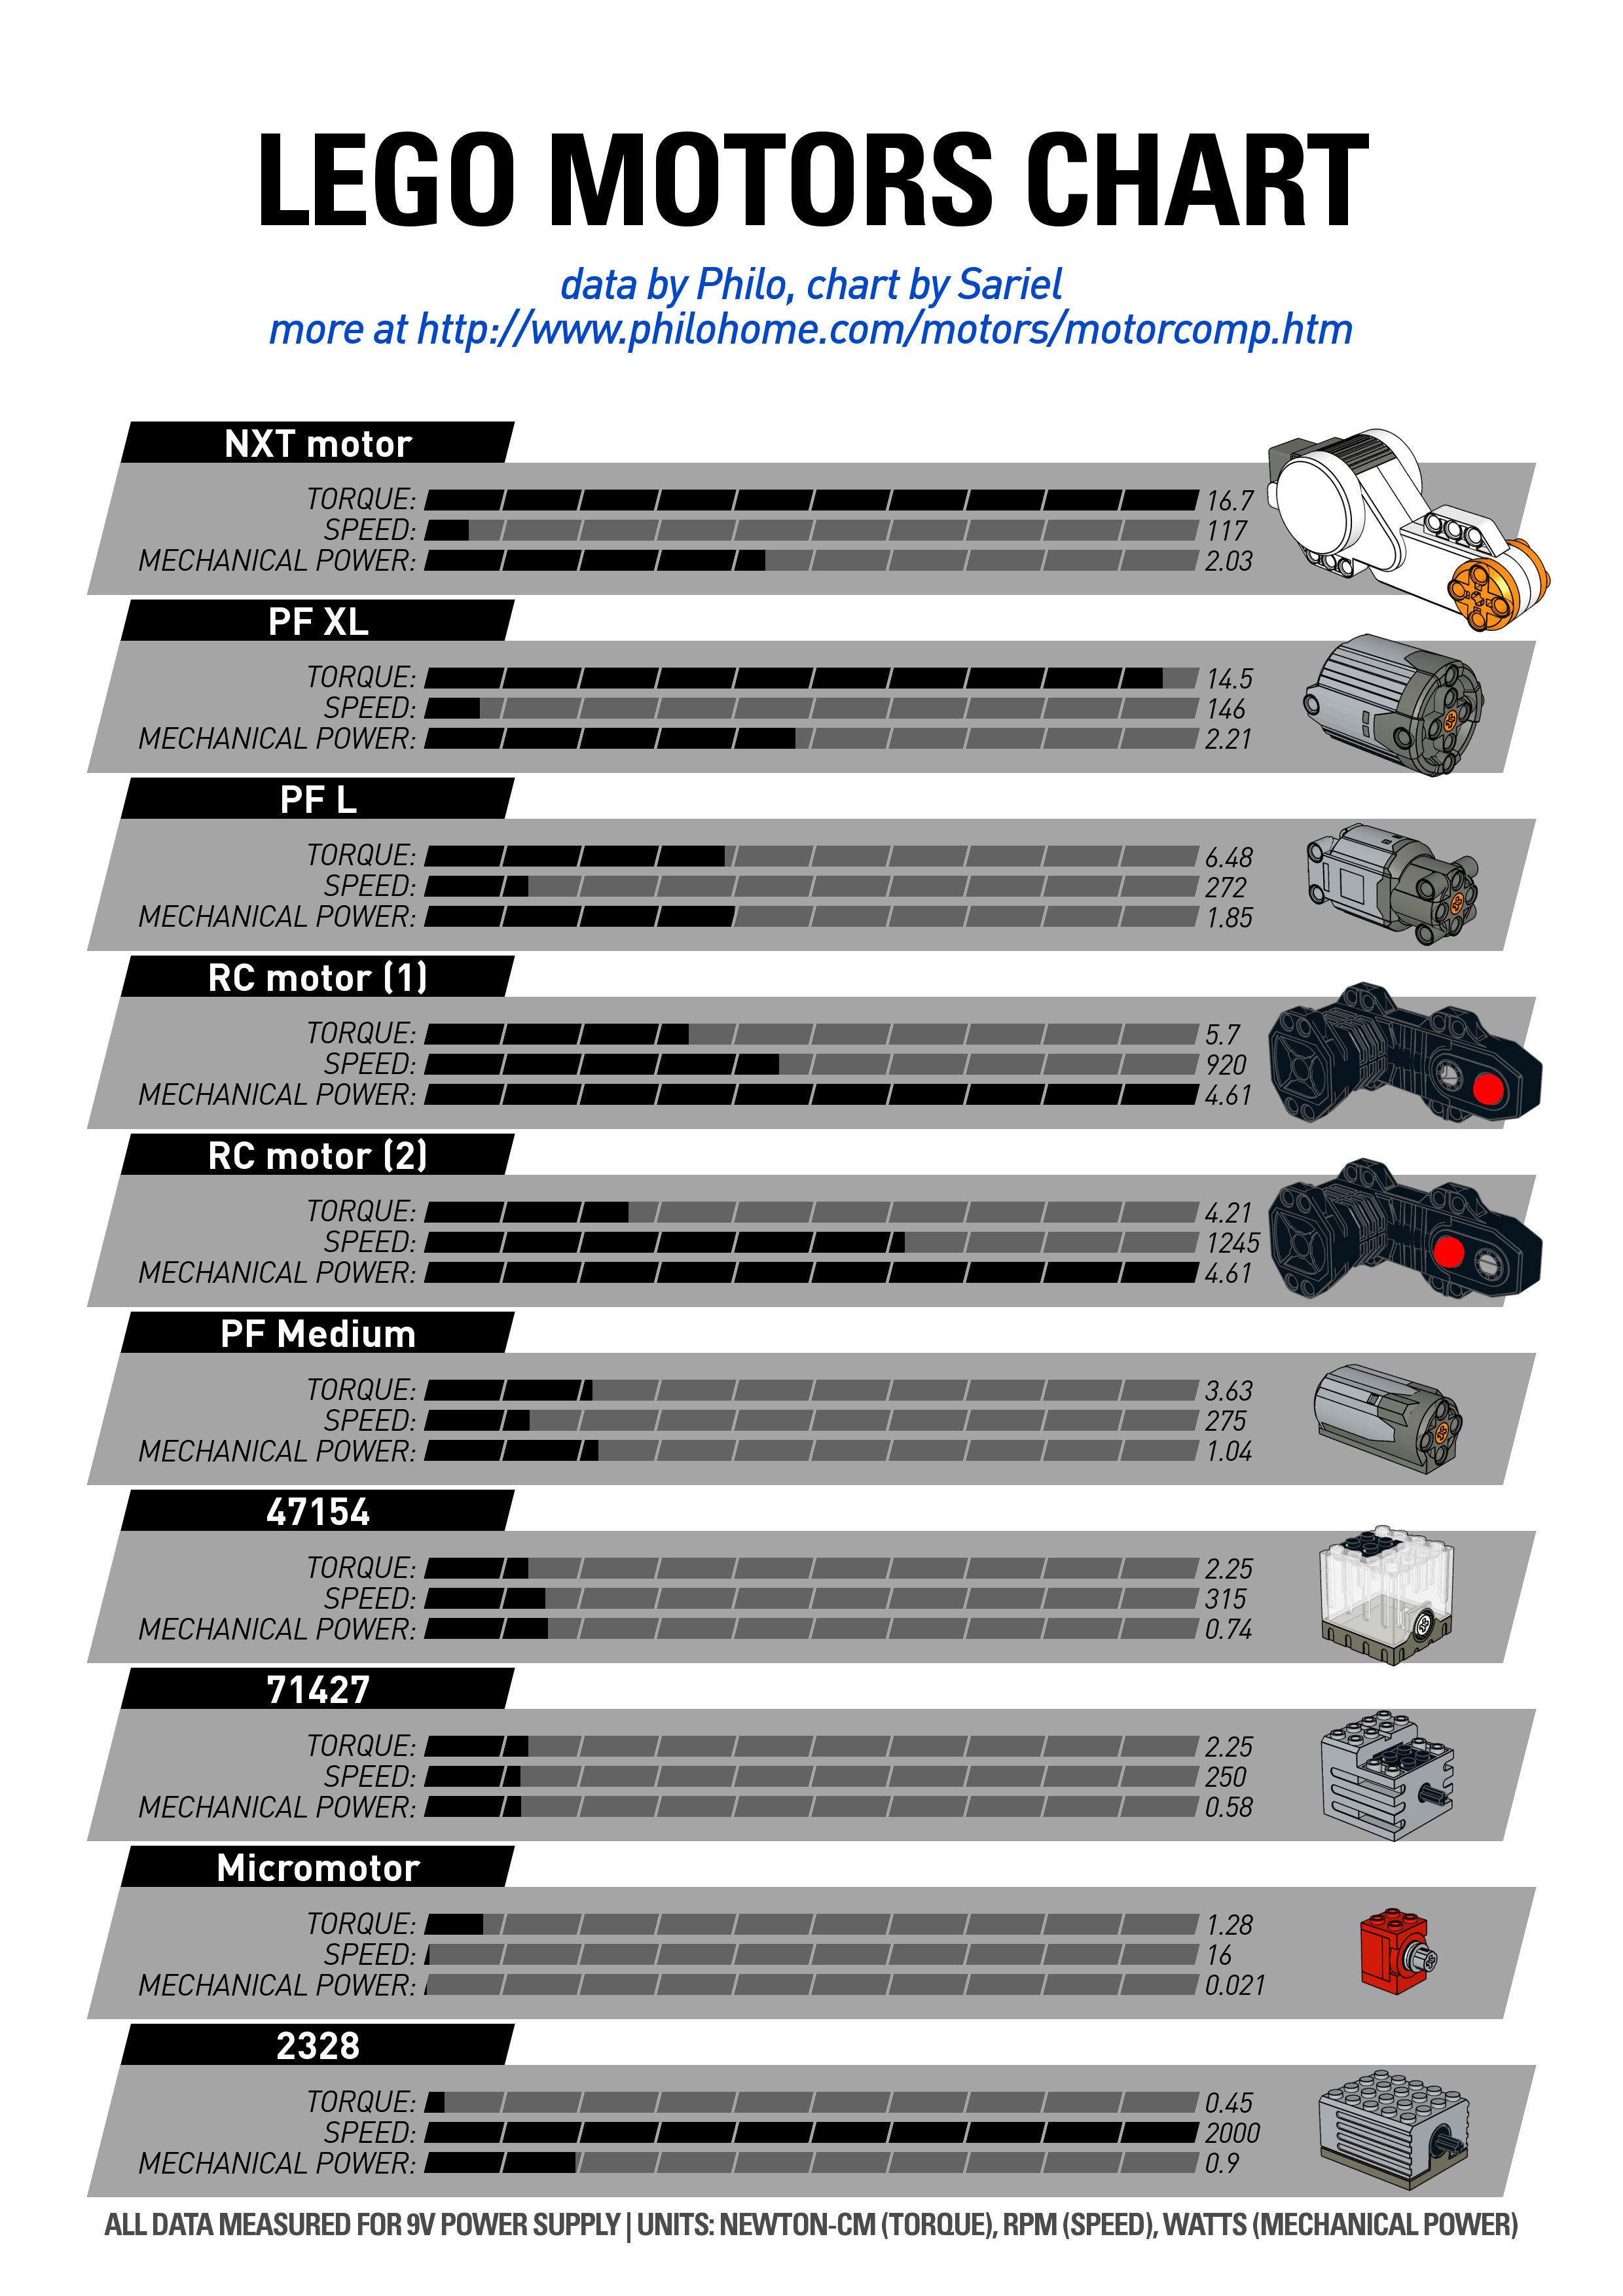 Lego Motors Chart Comparison Based On Torque Speed And Mechanical Power Lego Gears Lego Nxt Lego